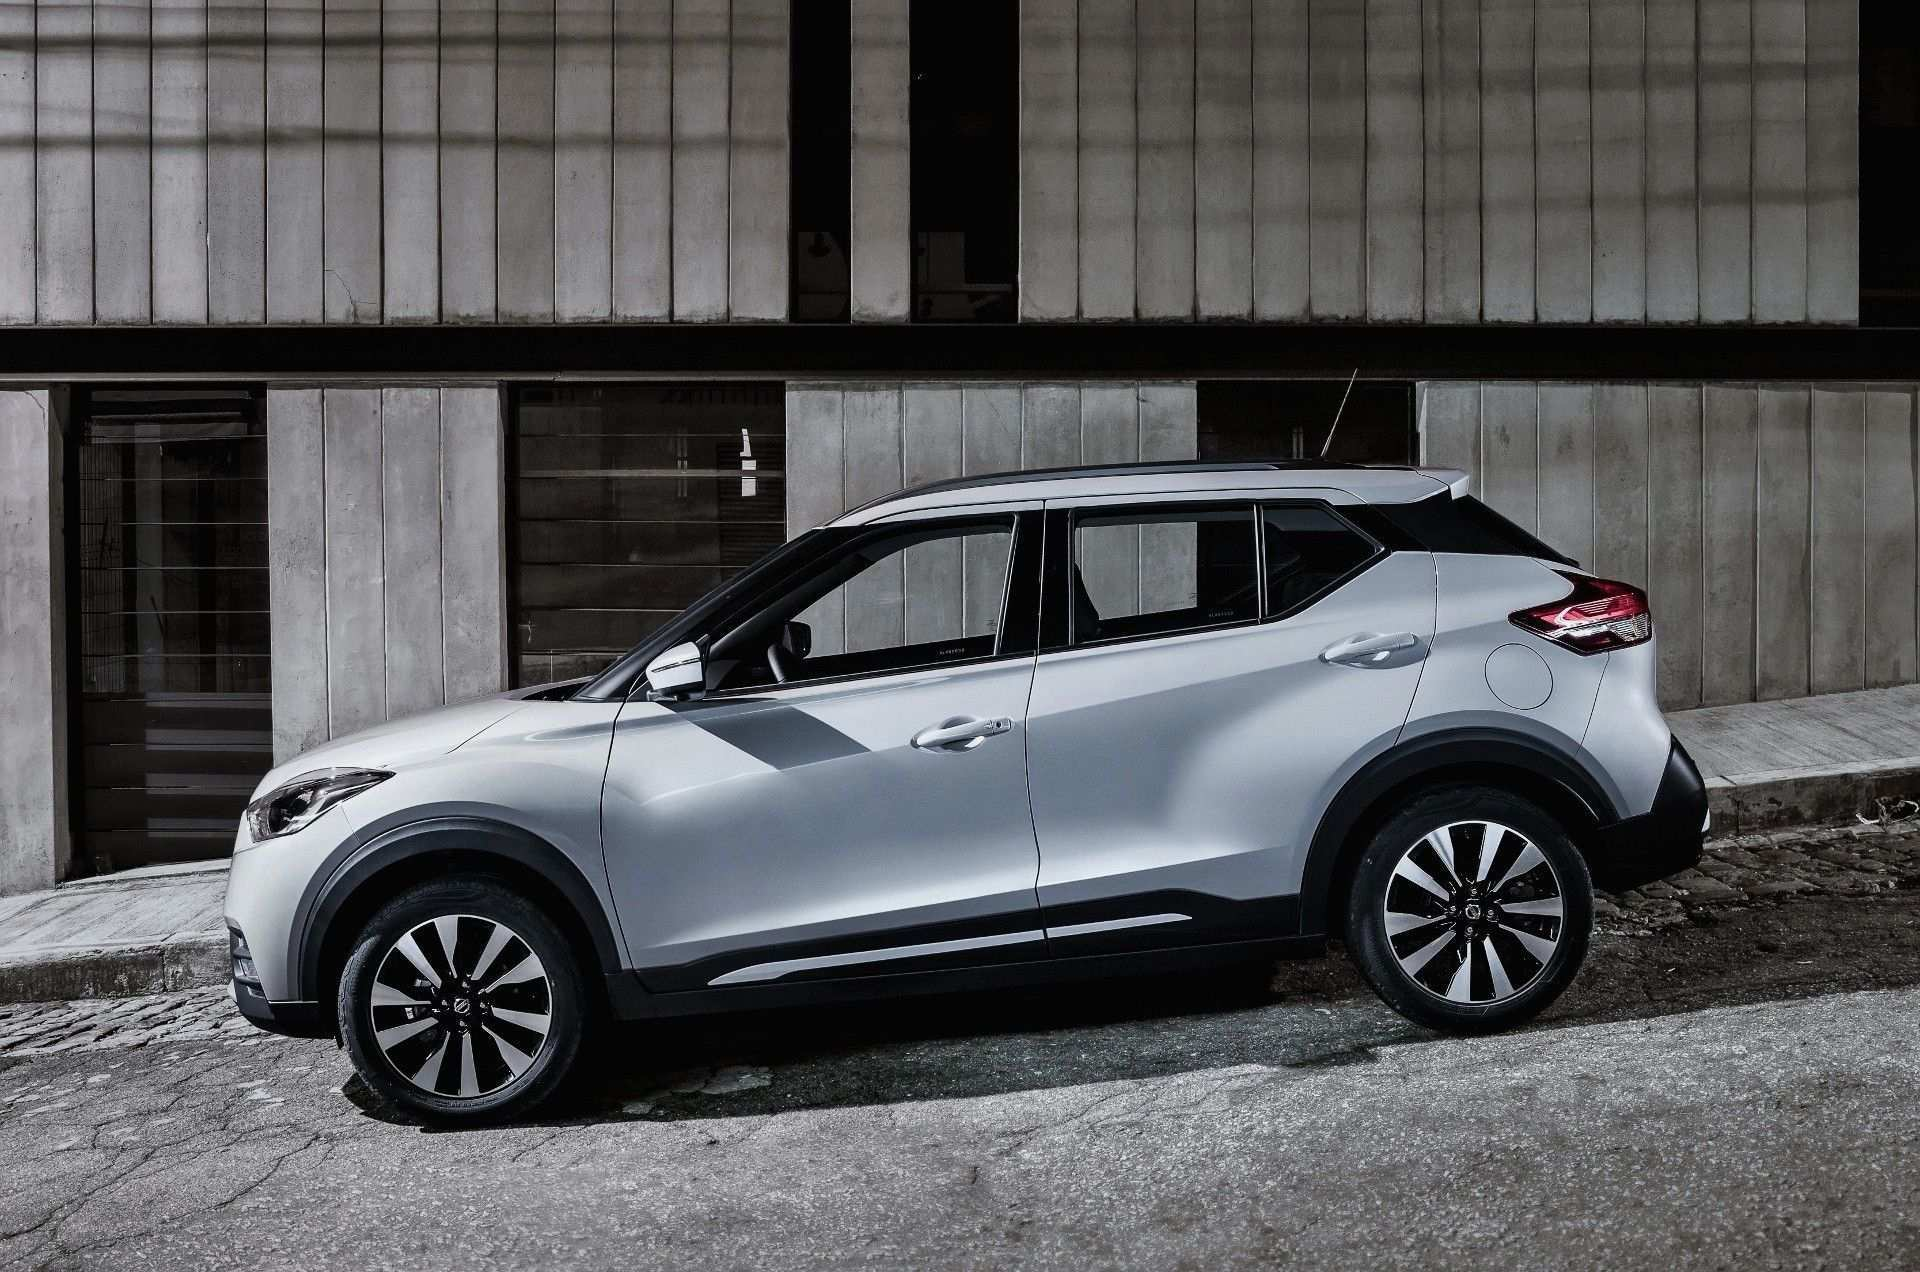 22 A Nissan Kicks 2019 Mexico Price Design And Review